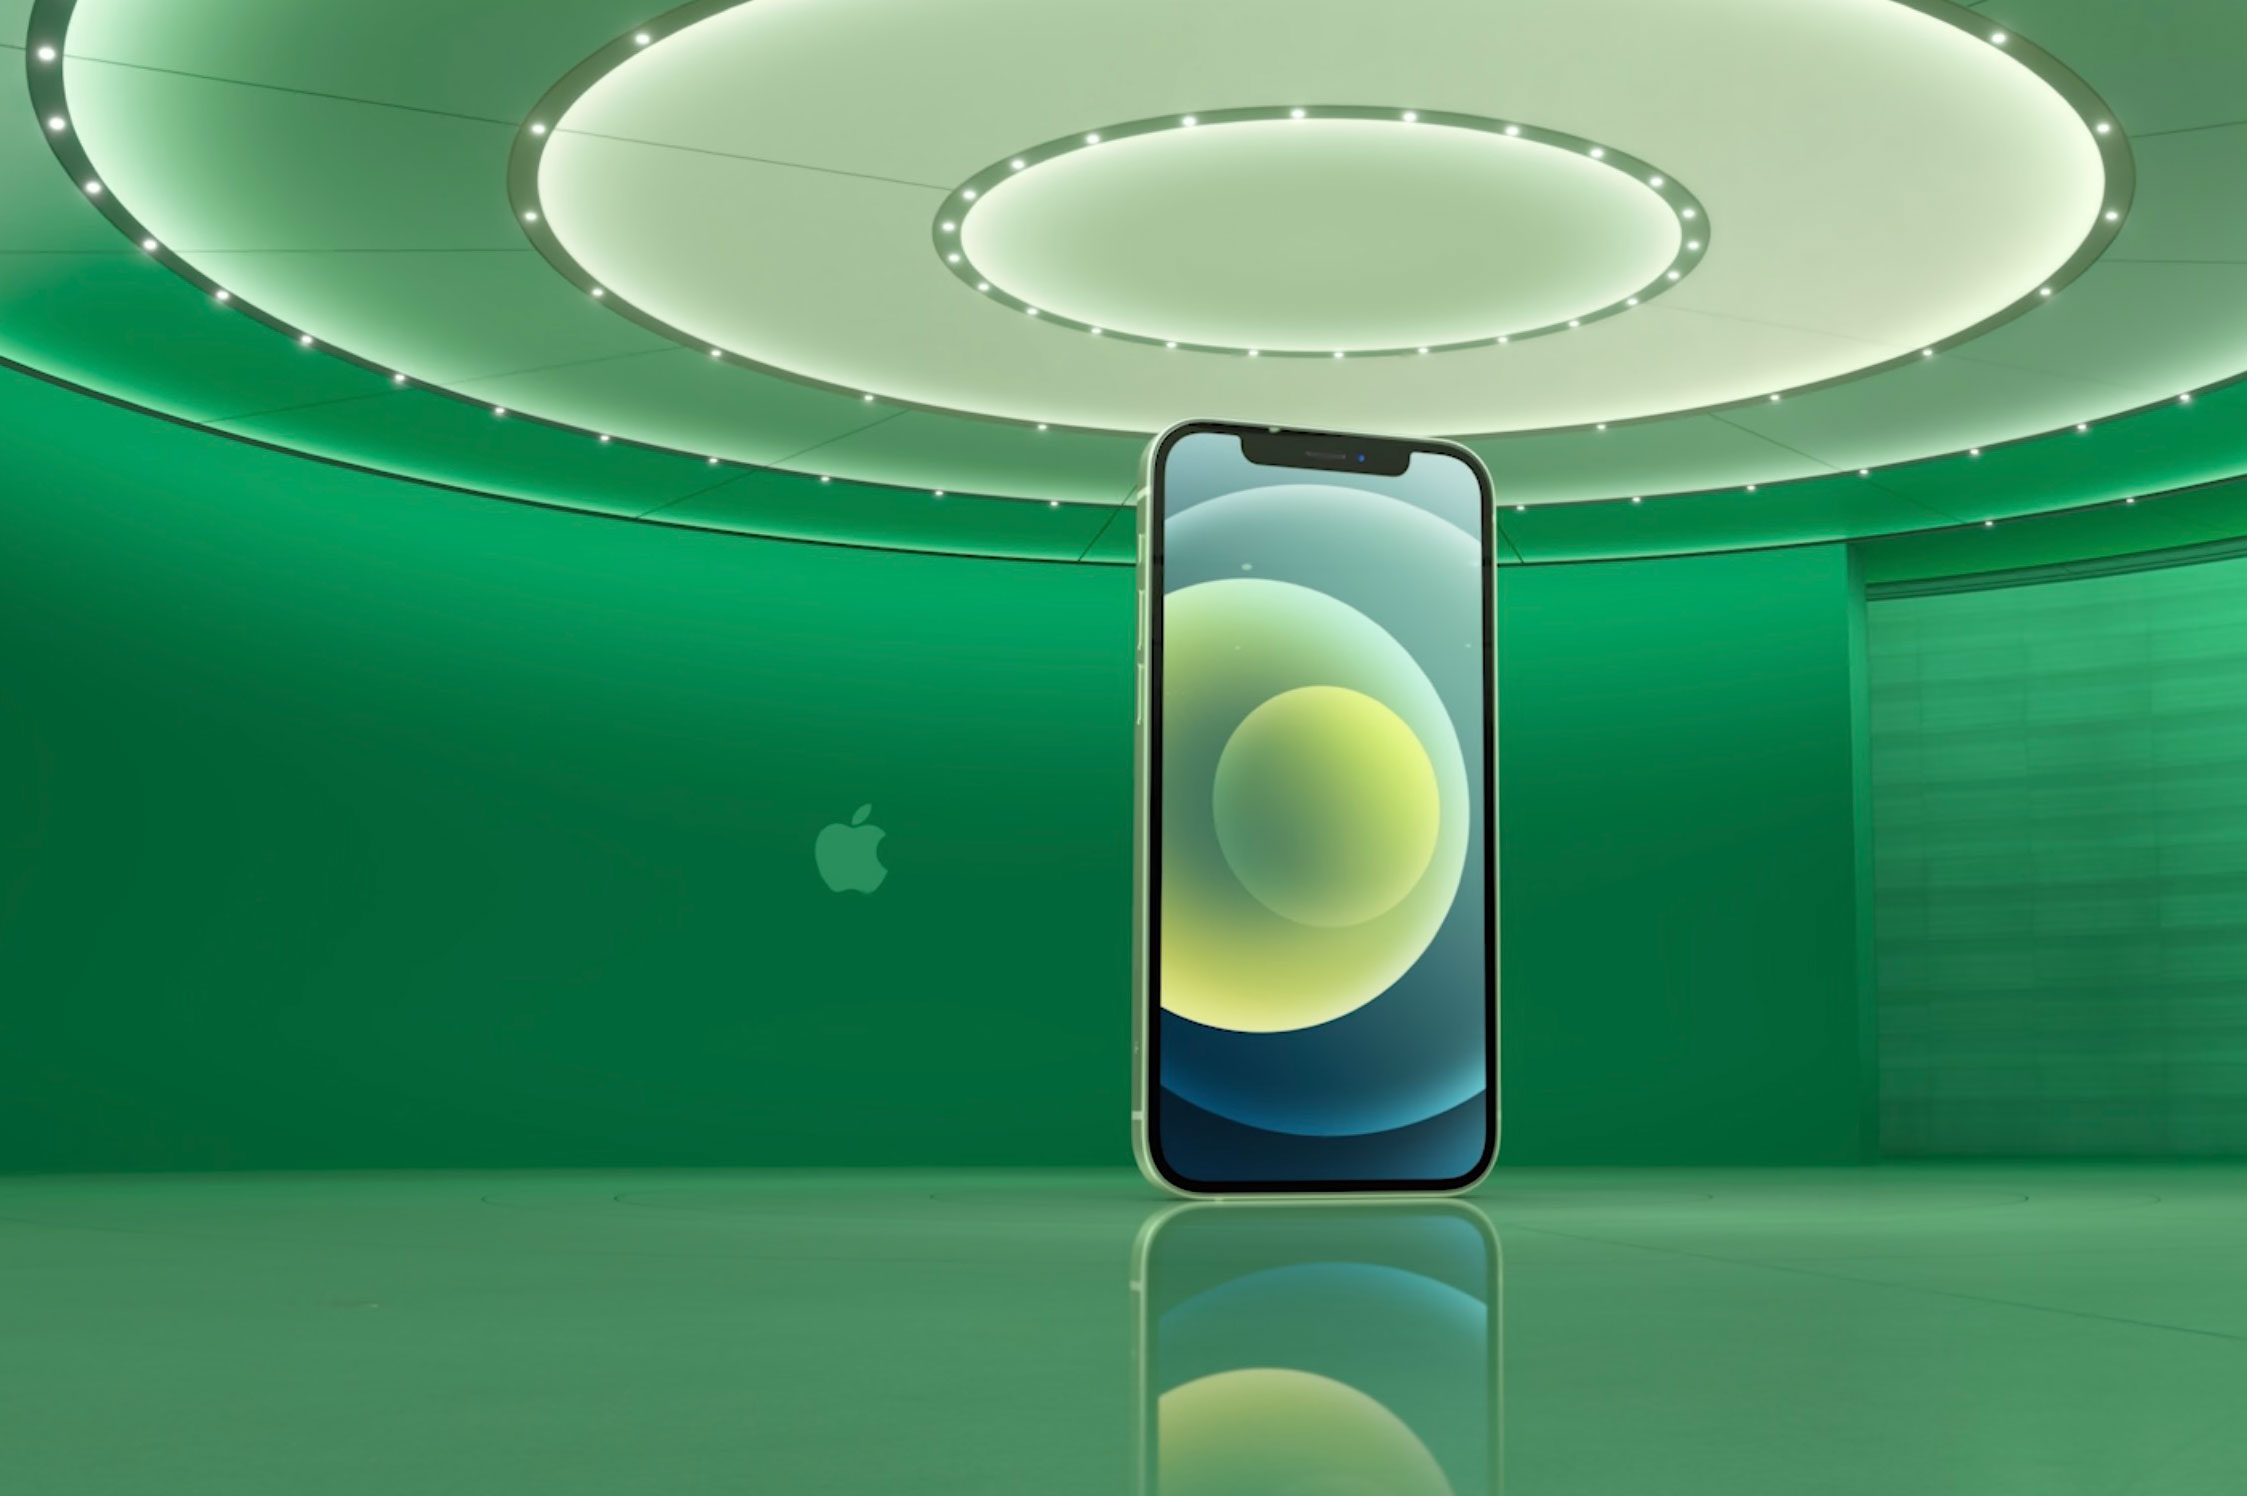 iphone 12 4 - What if the iPhone 12 Mini paved the way for more compact smartphones? - FREDZONE